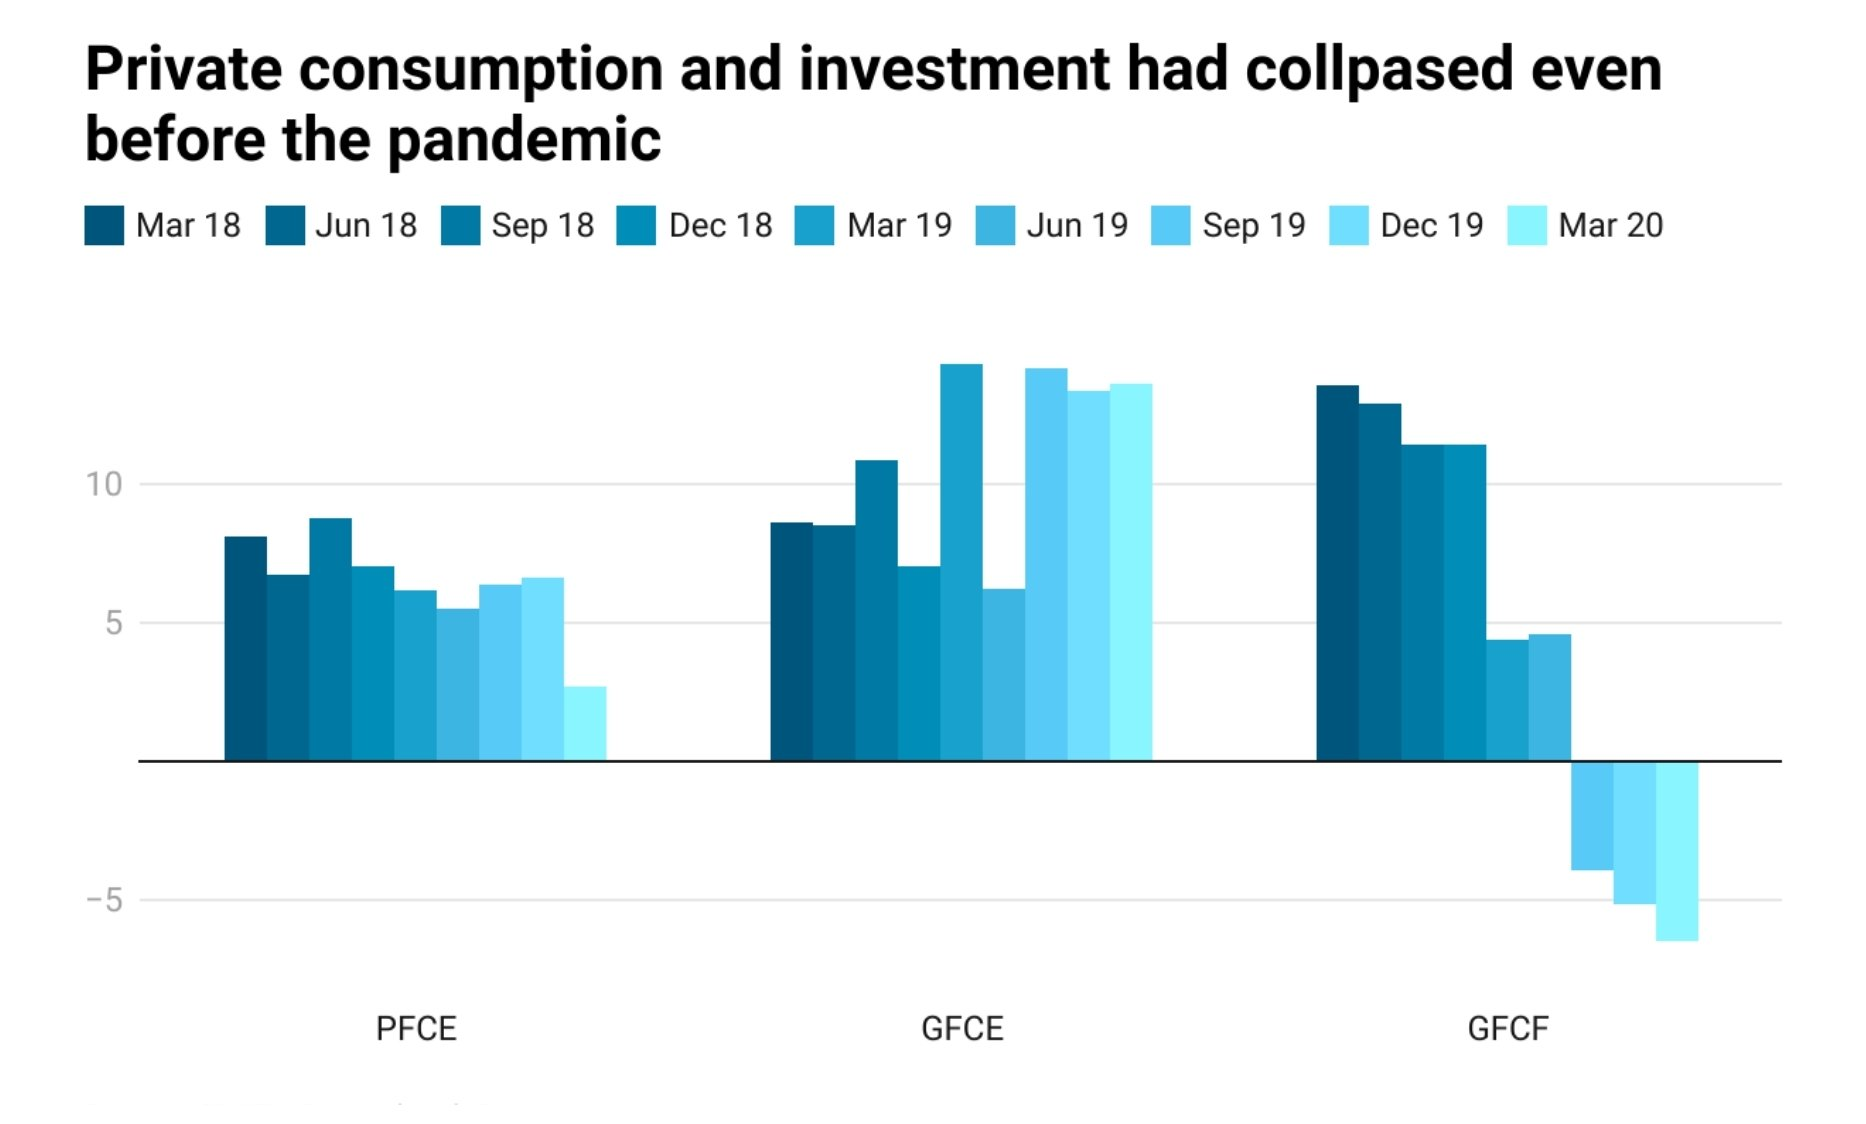 Private Consumption & Investment had collapsed before pandemic